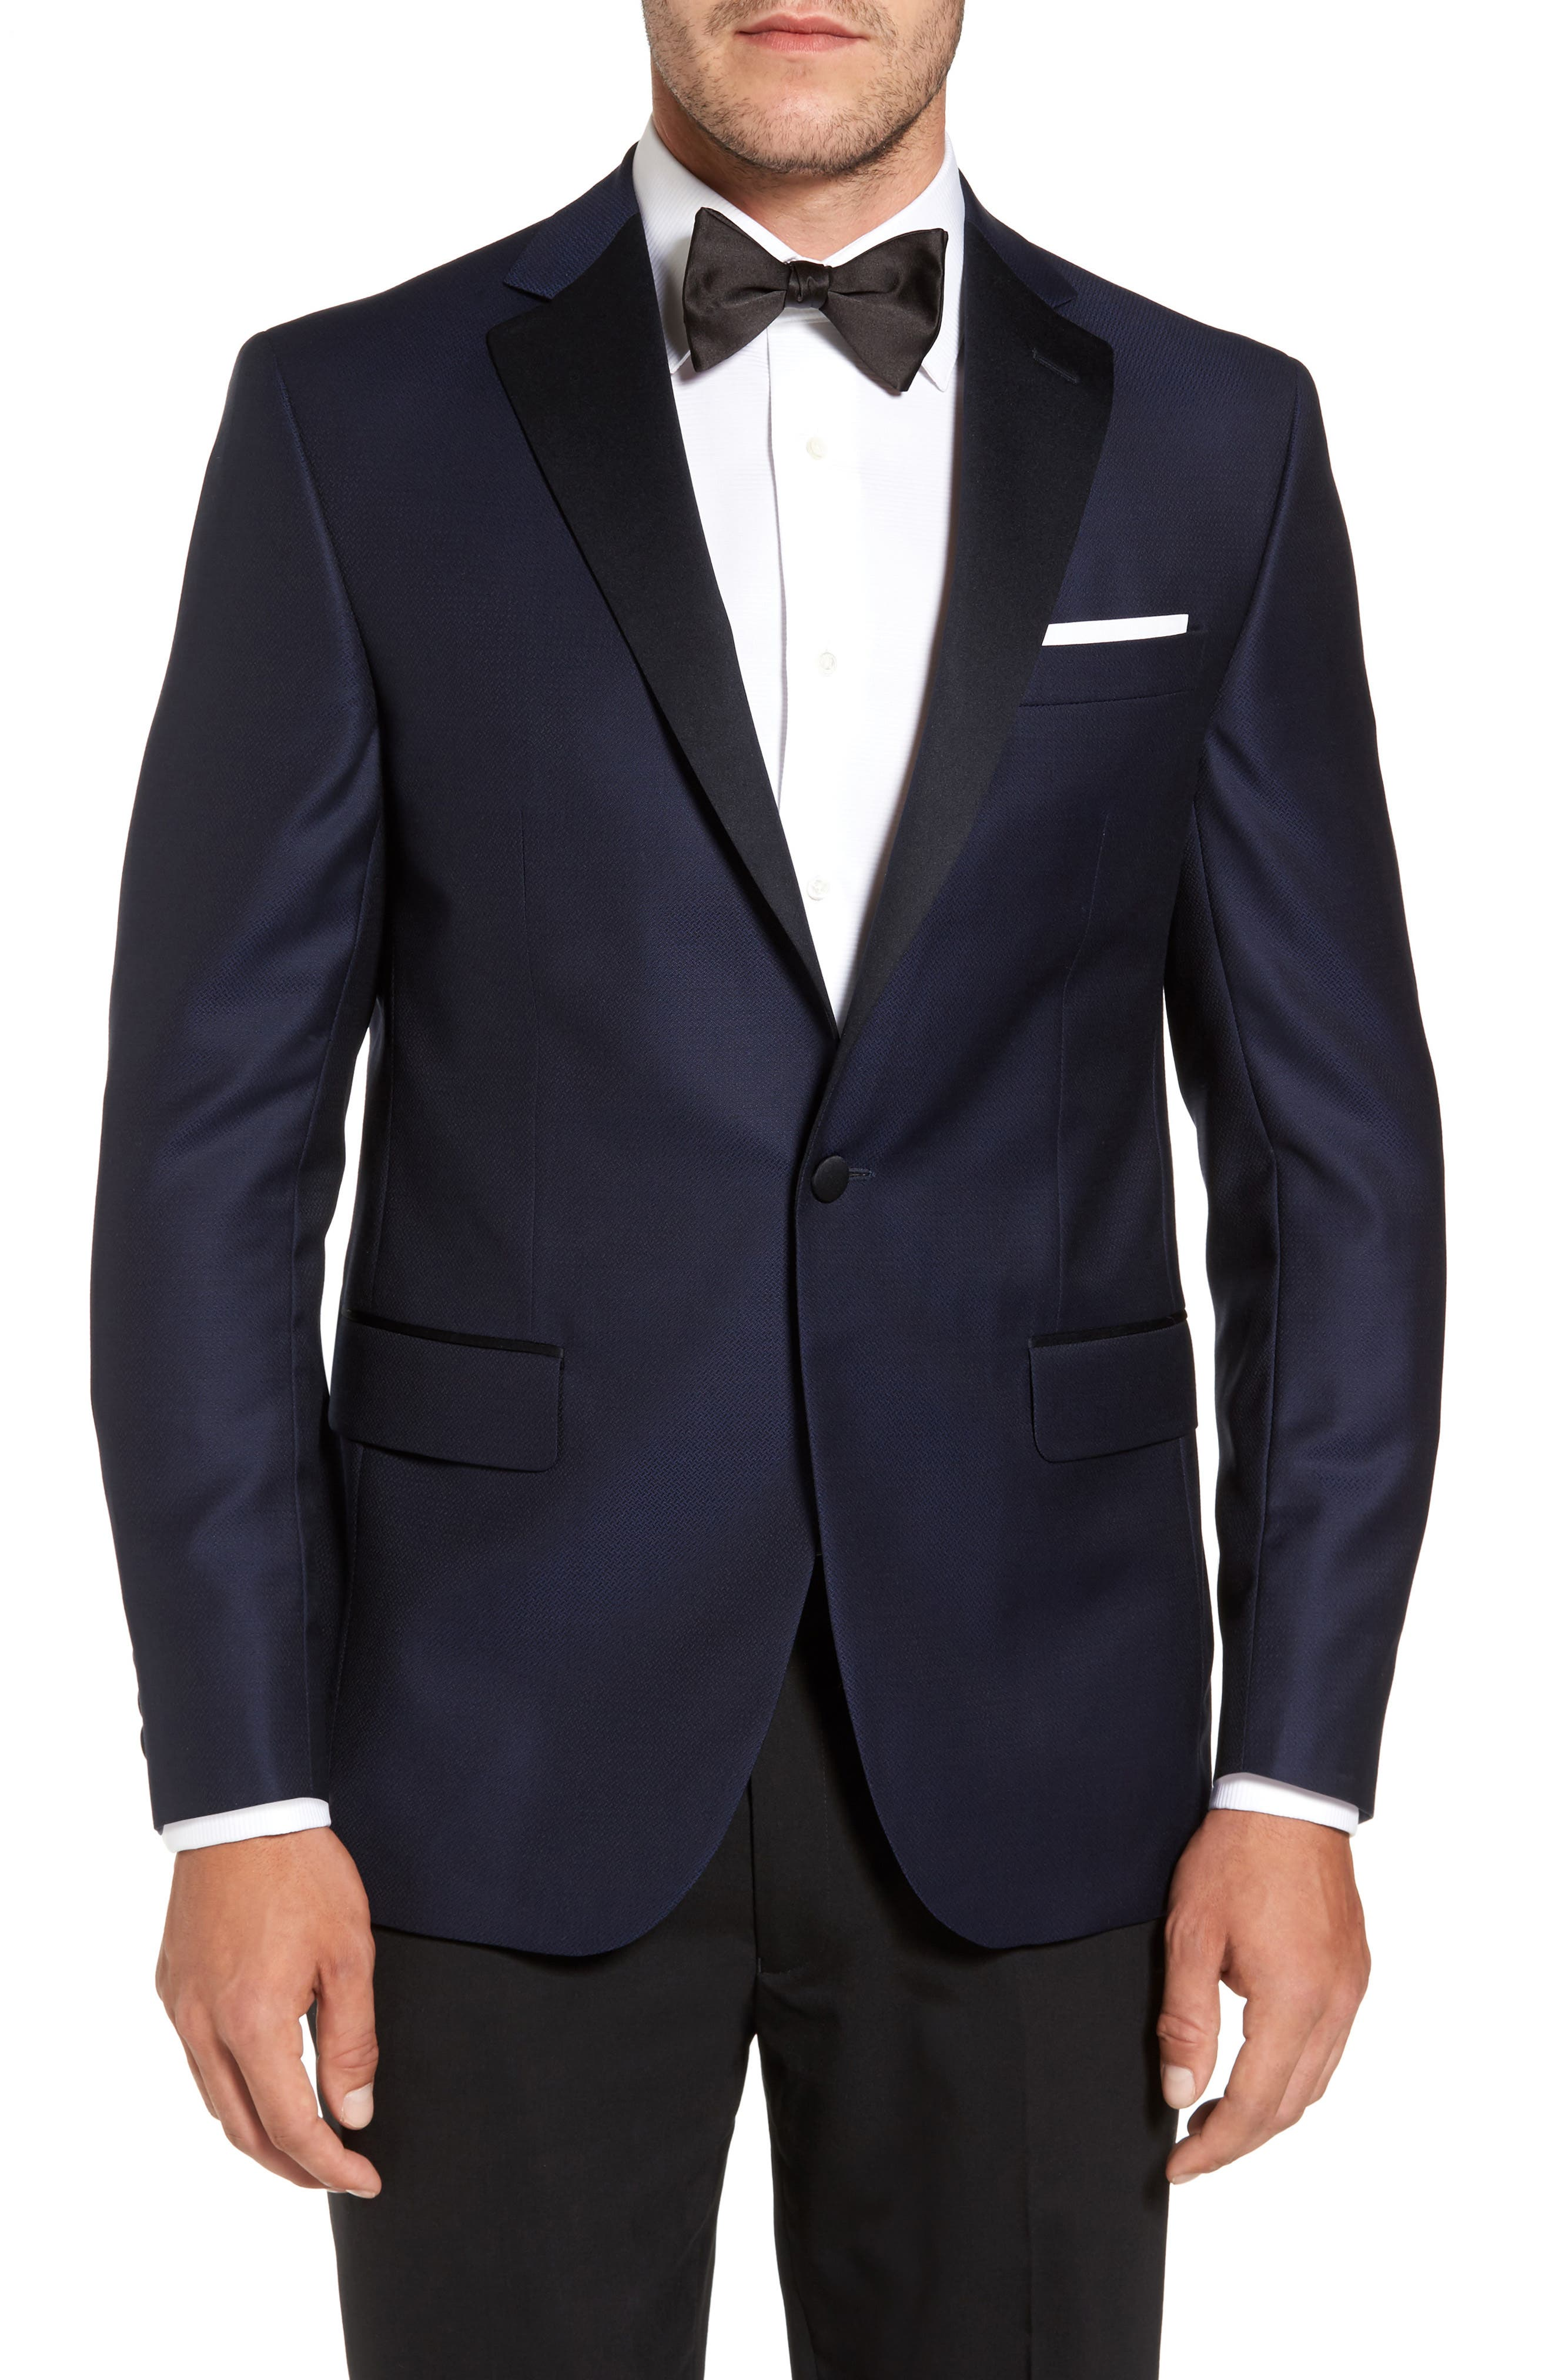 Reed Classic Fit Dinner Jacket,                             Main thumbnail 1, color,                             001